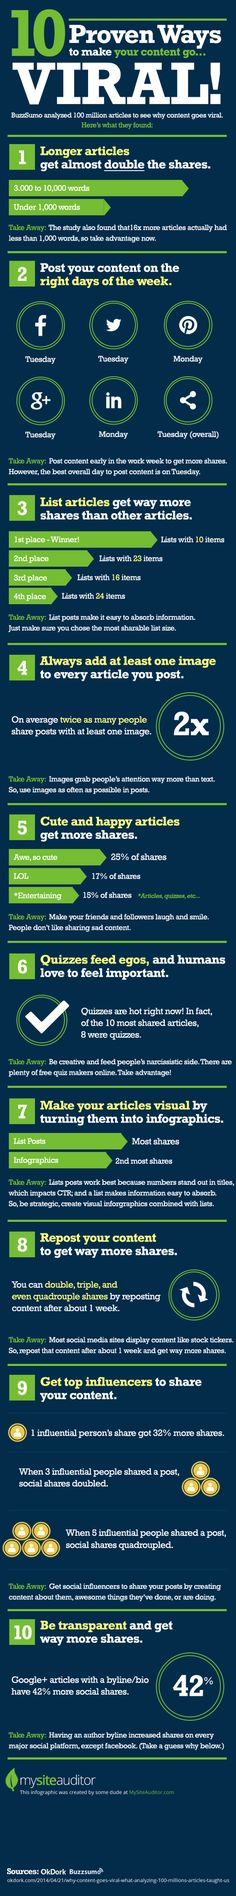 Infographic: 10 proven ways to make content go viral | Articles | Main